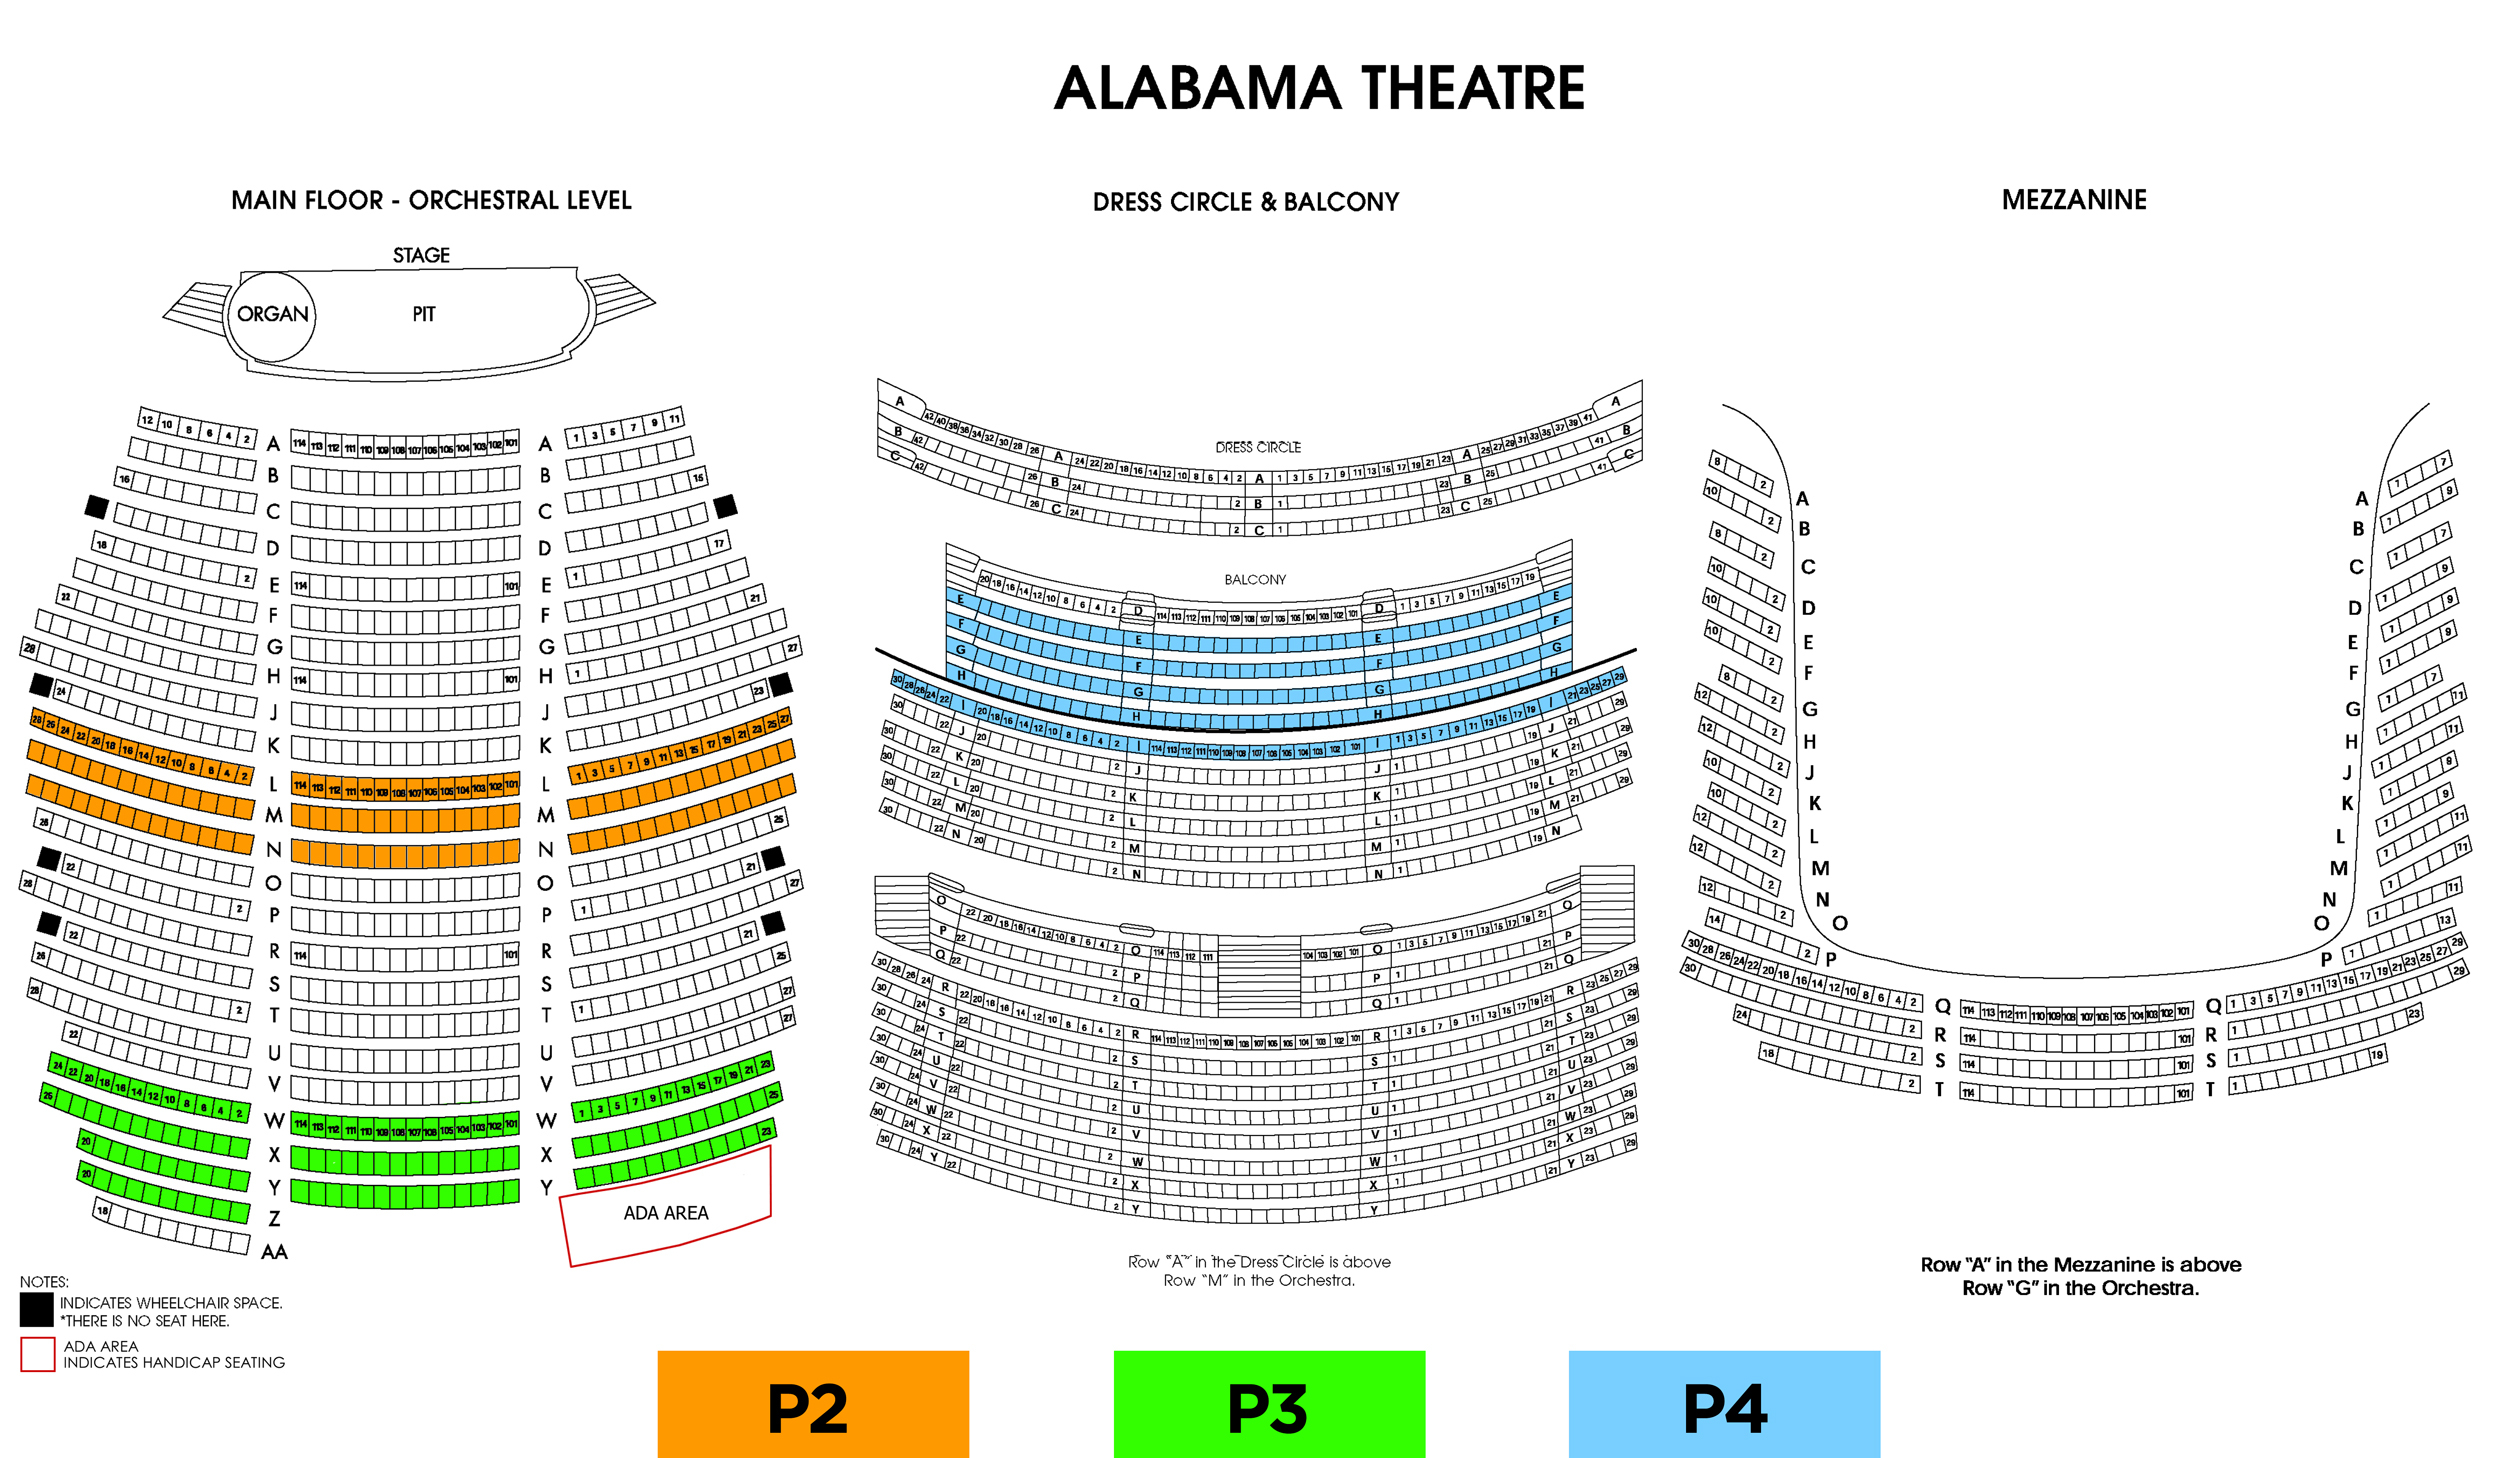 Seating Charts shopkins seating alabama theatre tickets